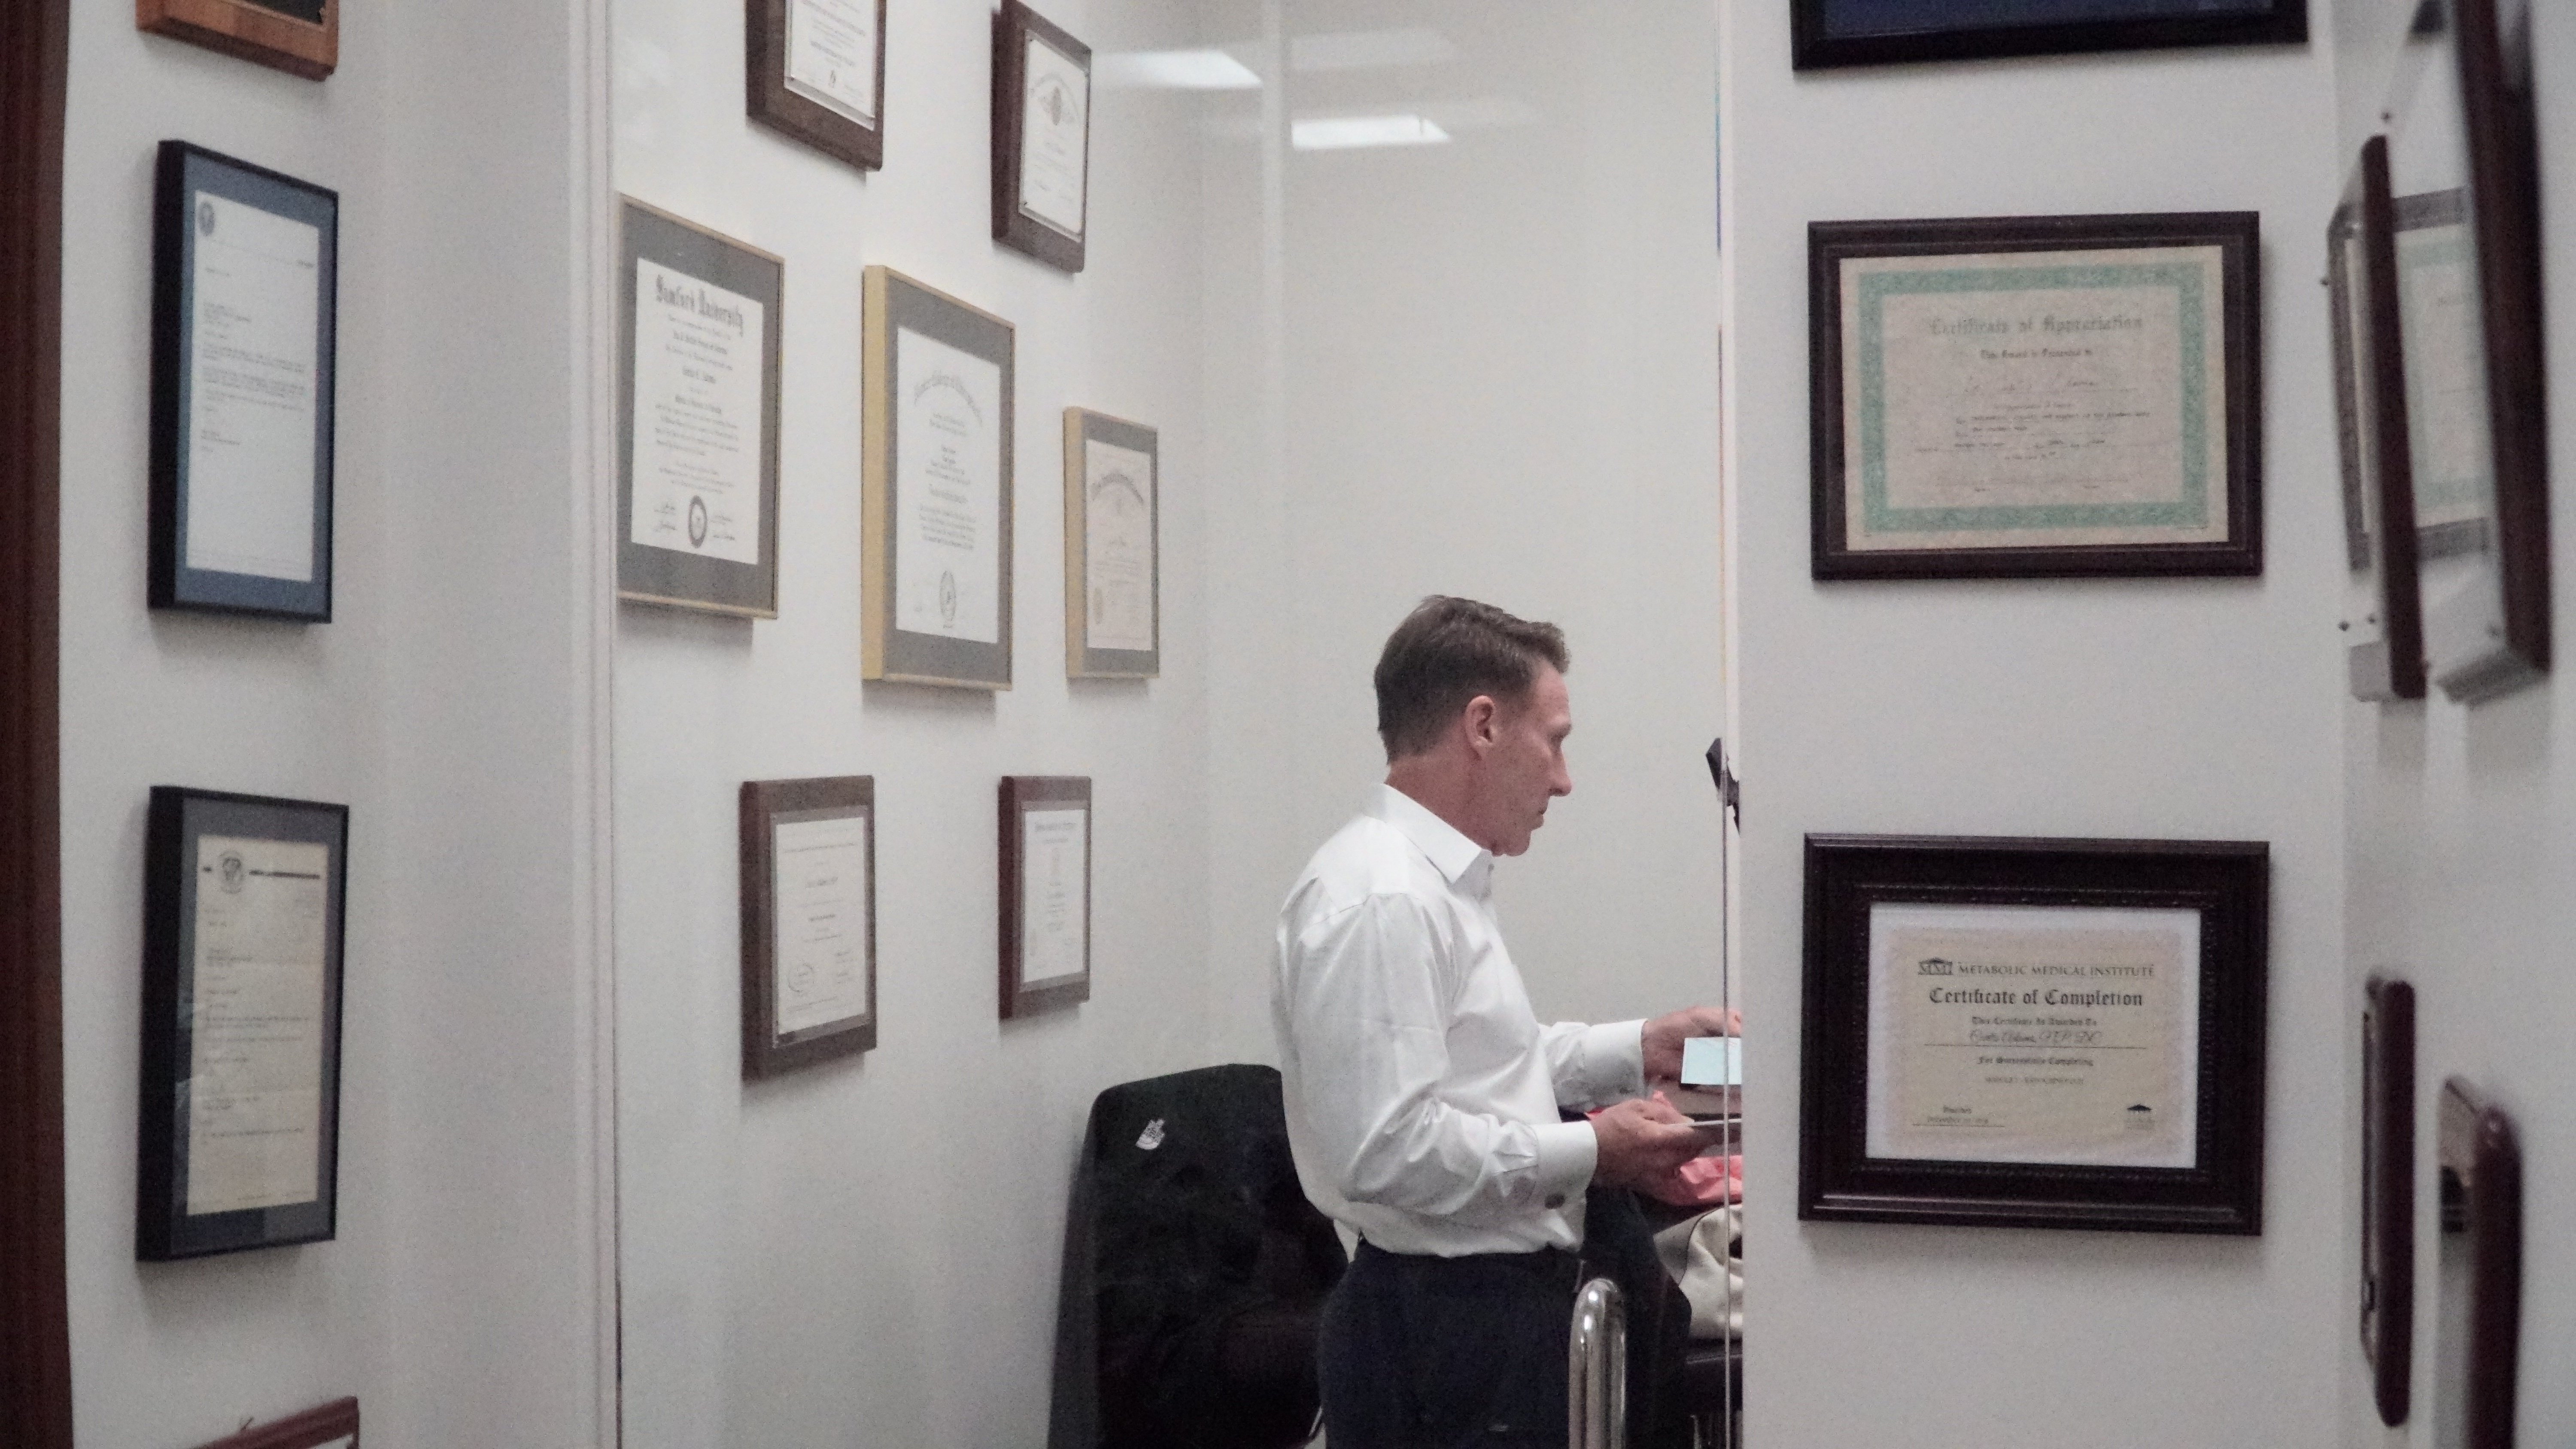 Dr. Adams of Progressive Integrated Healthcare Dallas standing by his wall of plaques and certifications